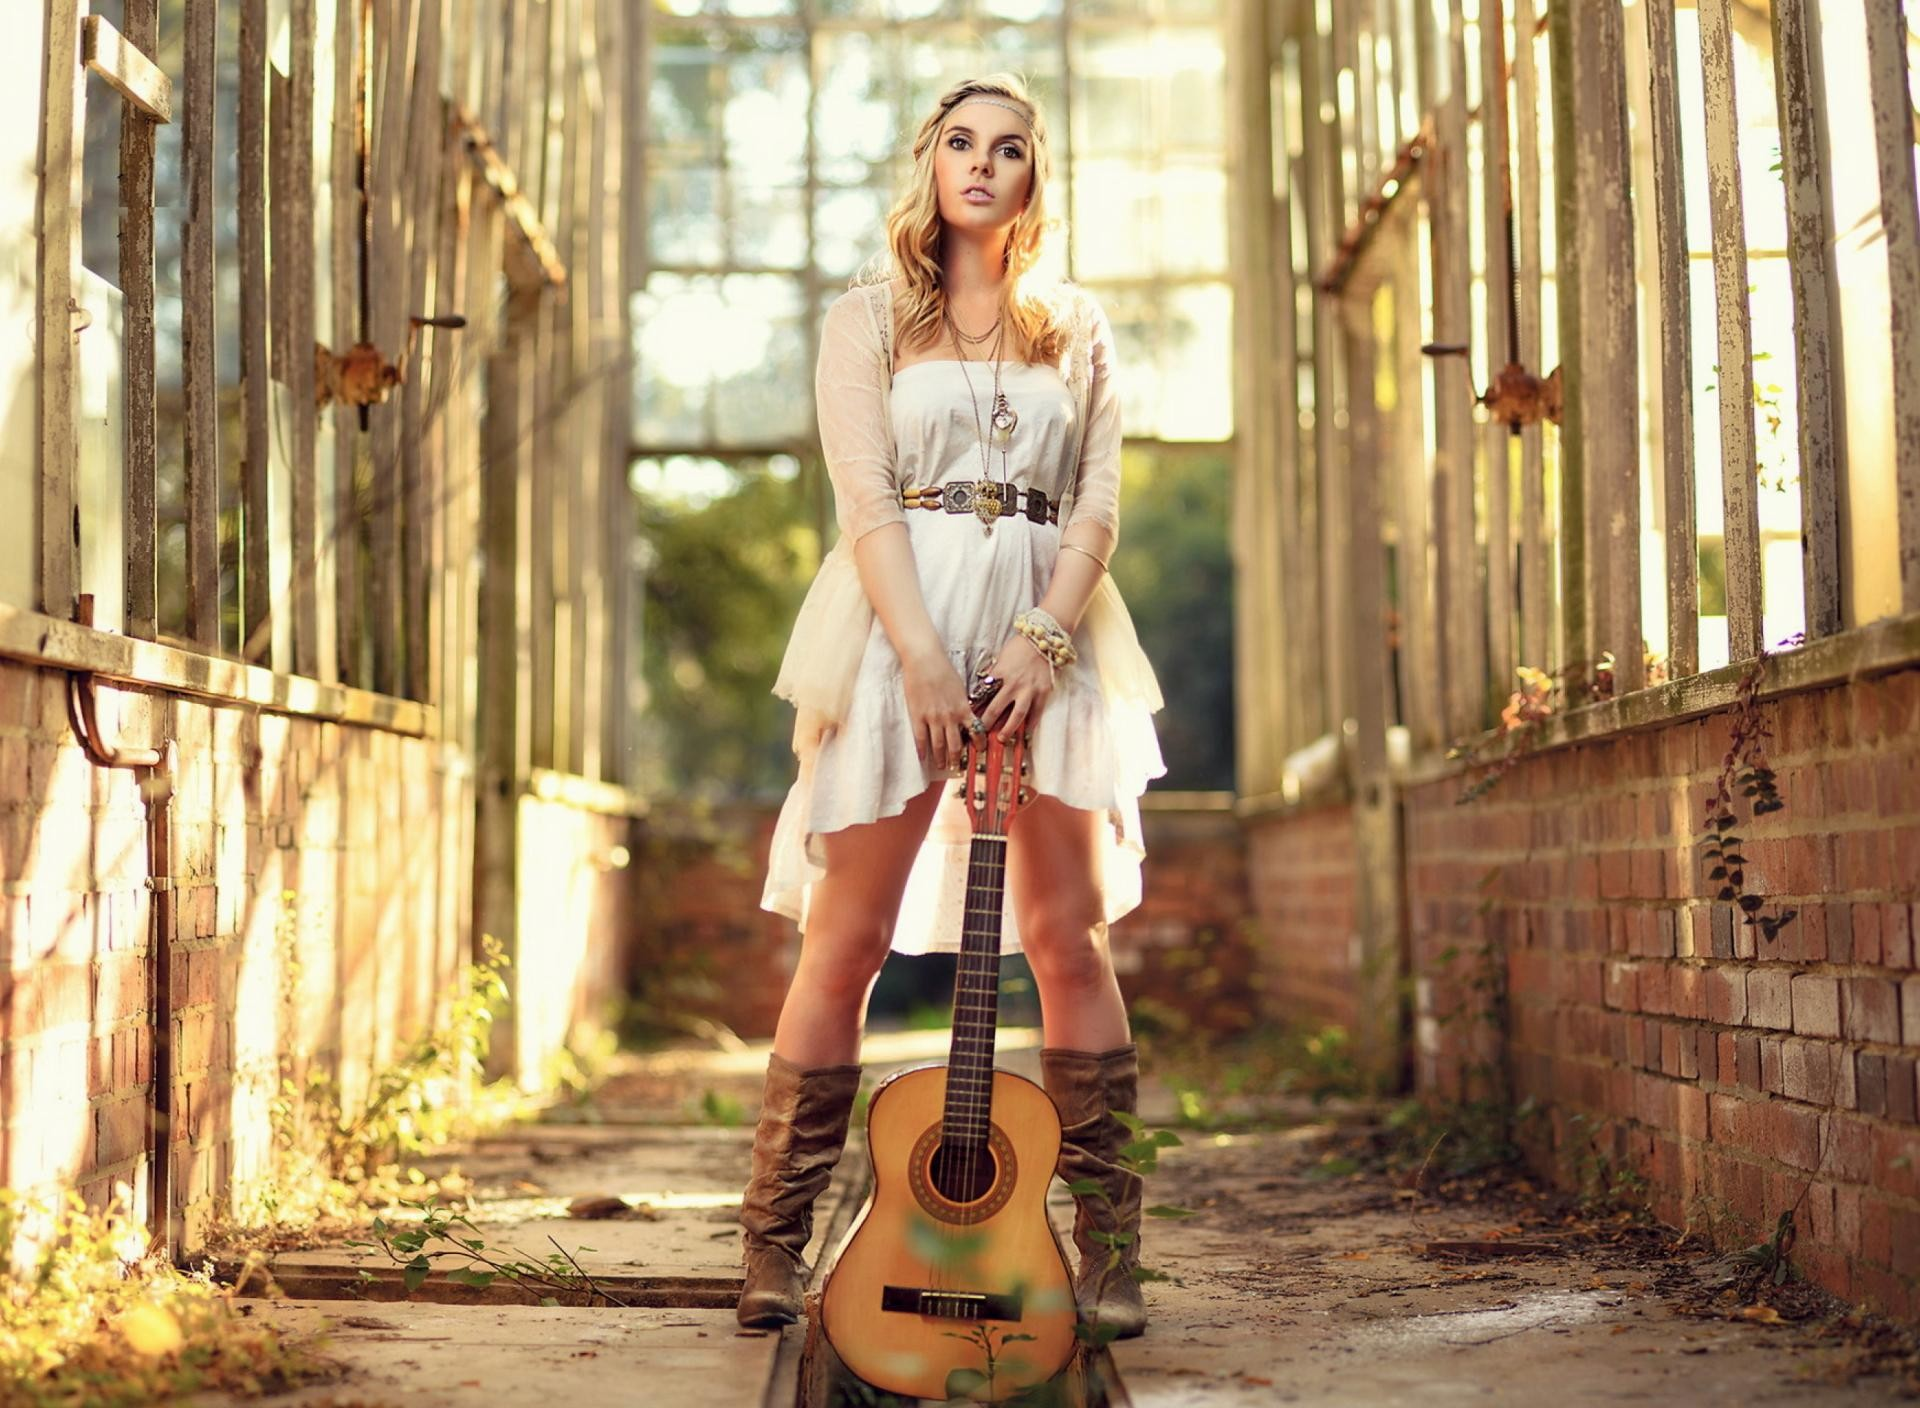 wallpaper.wiki-Girl-With-Guitar-Chic-Country-Style-